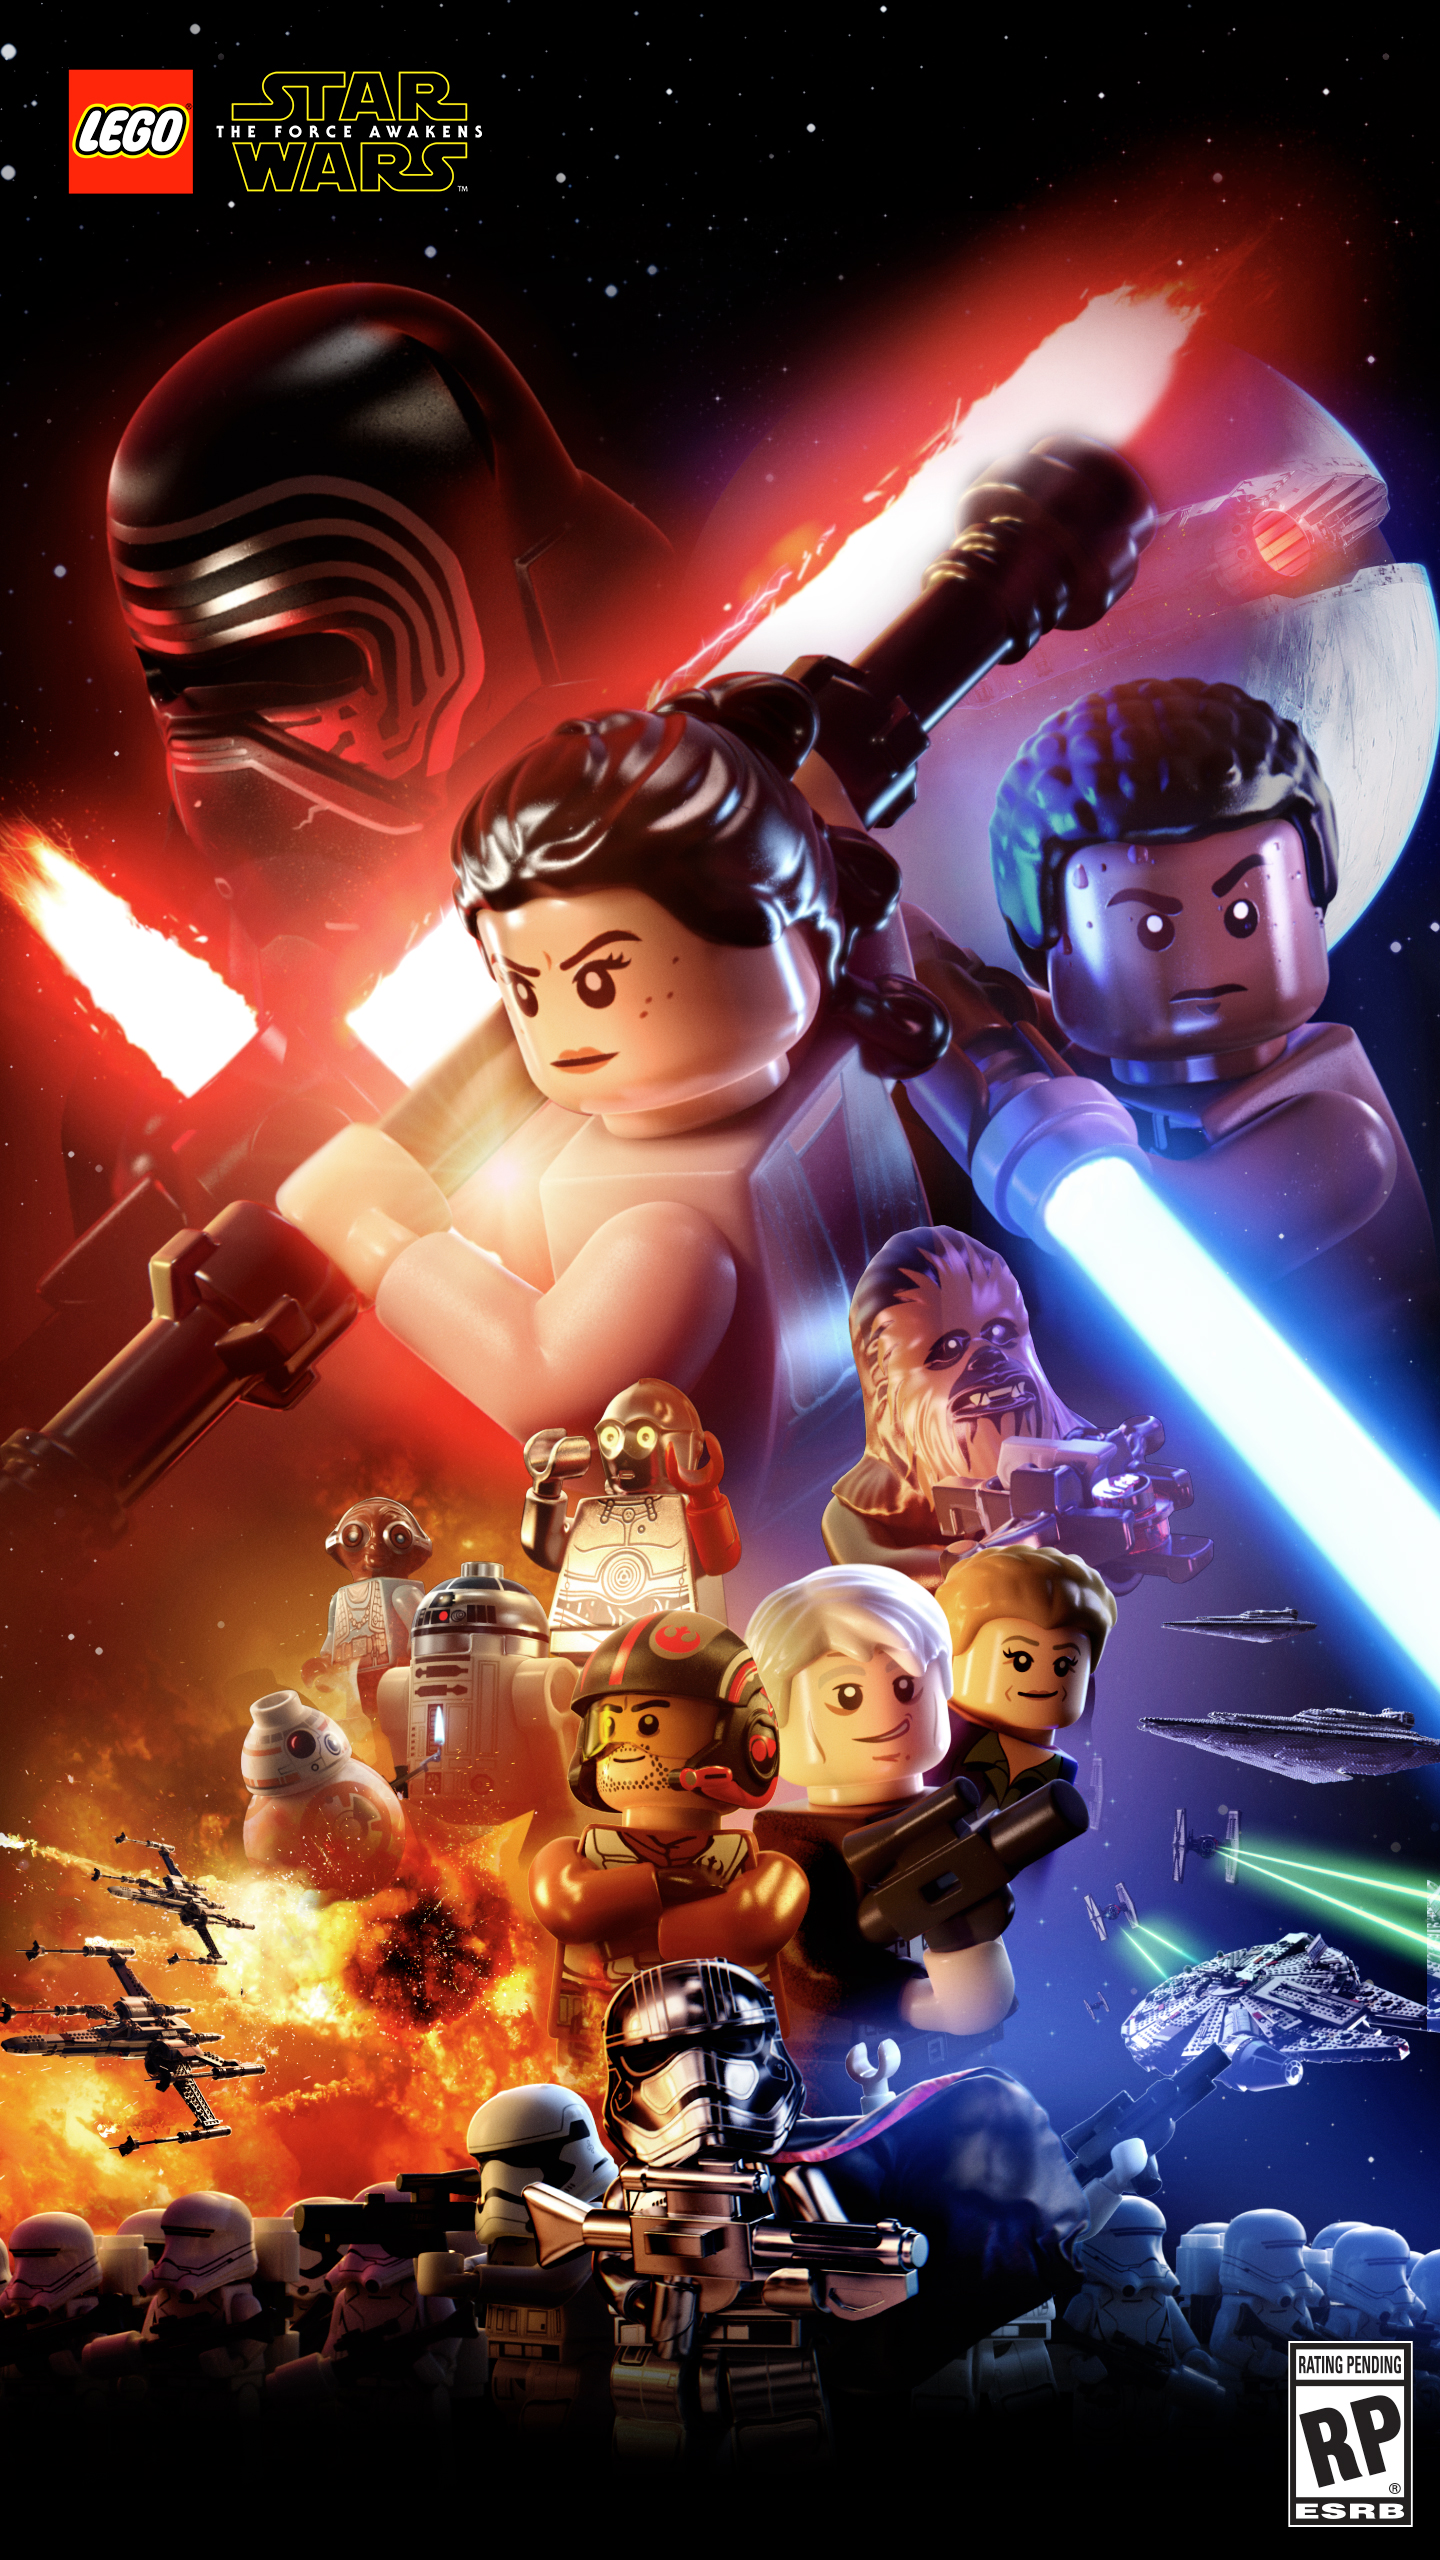 Lego Star Wars Wallpapers Widescreen On Hd Wallpaper Lego Star Wars Wallpaper Phone 1440x2560 Wallpaper Teahub Io